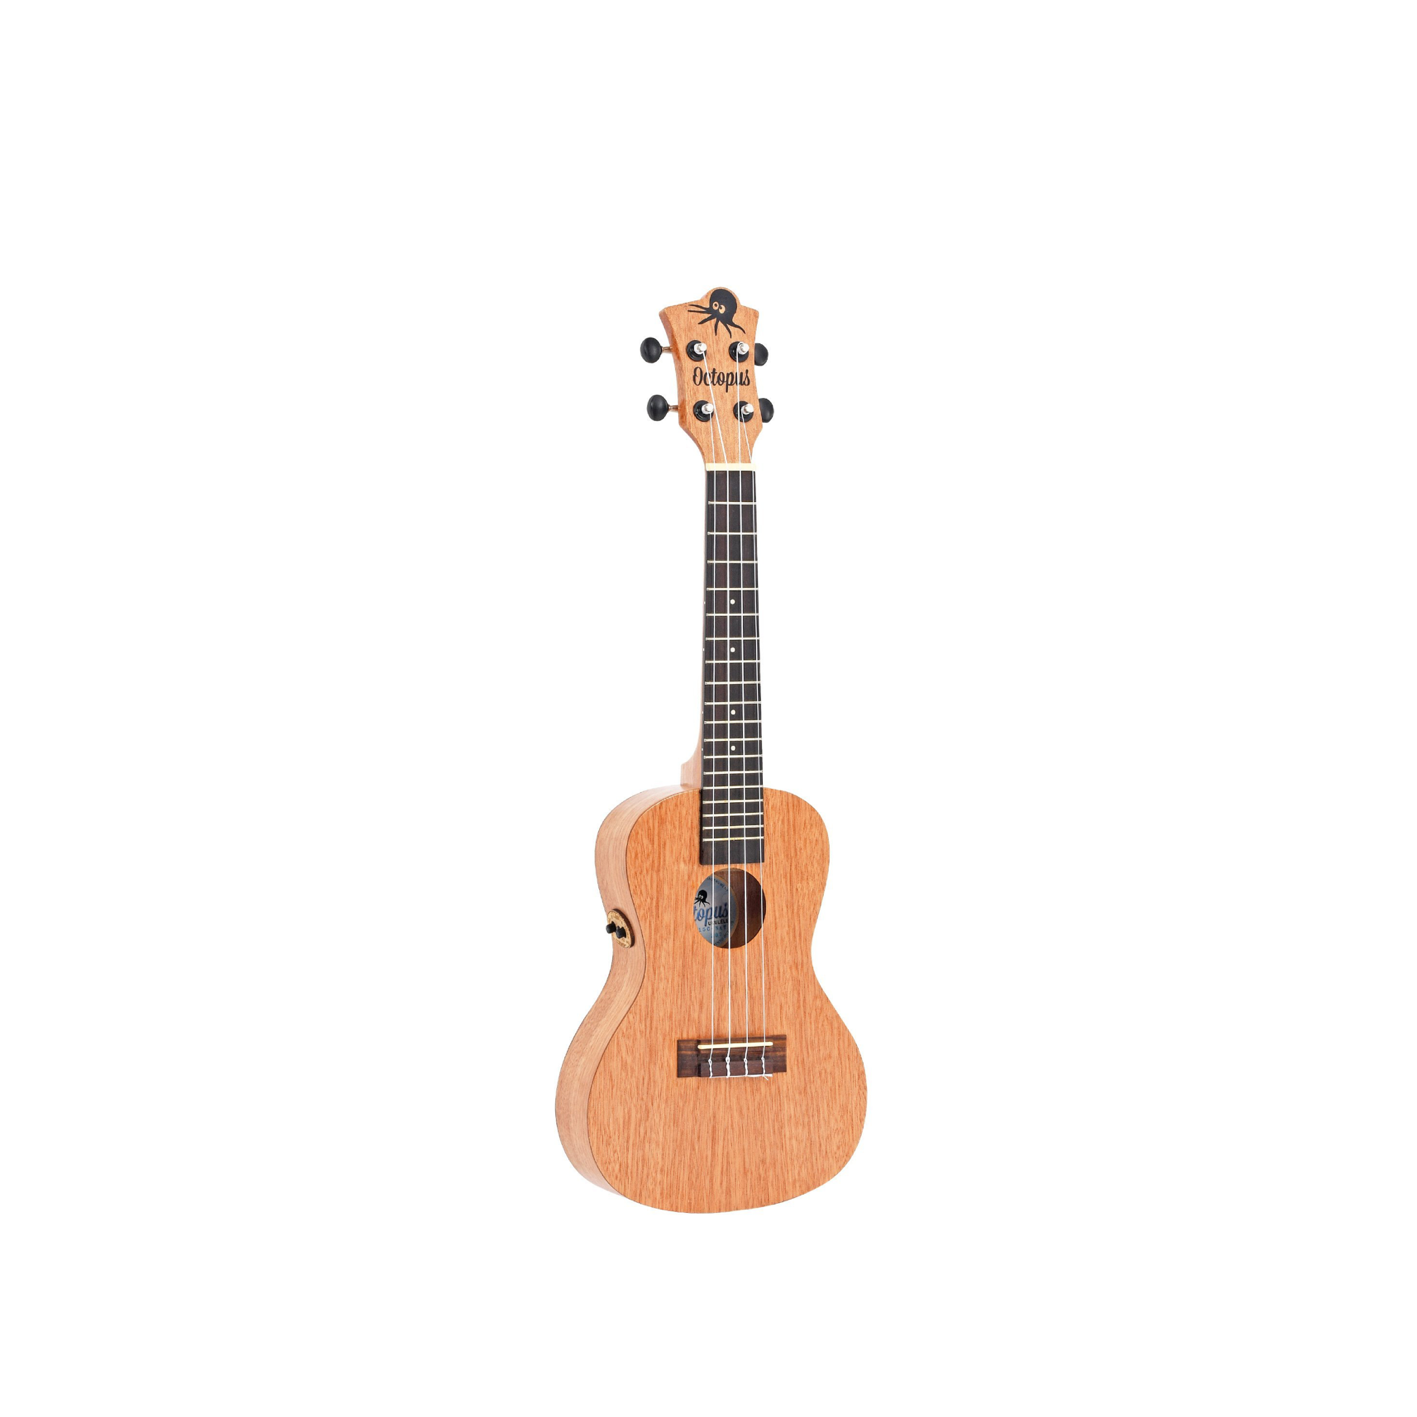 Octopus UK215CE-NAT Electro Concert Uke w/ Bag